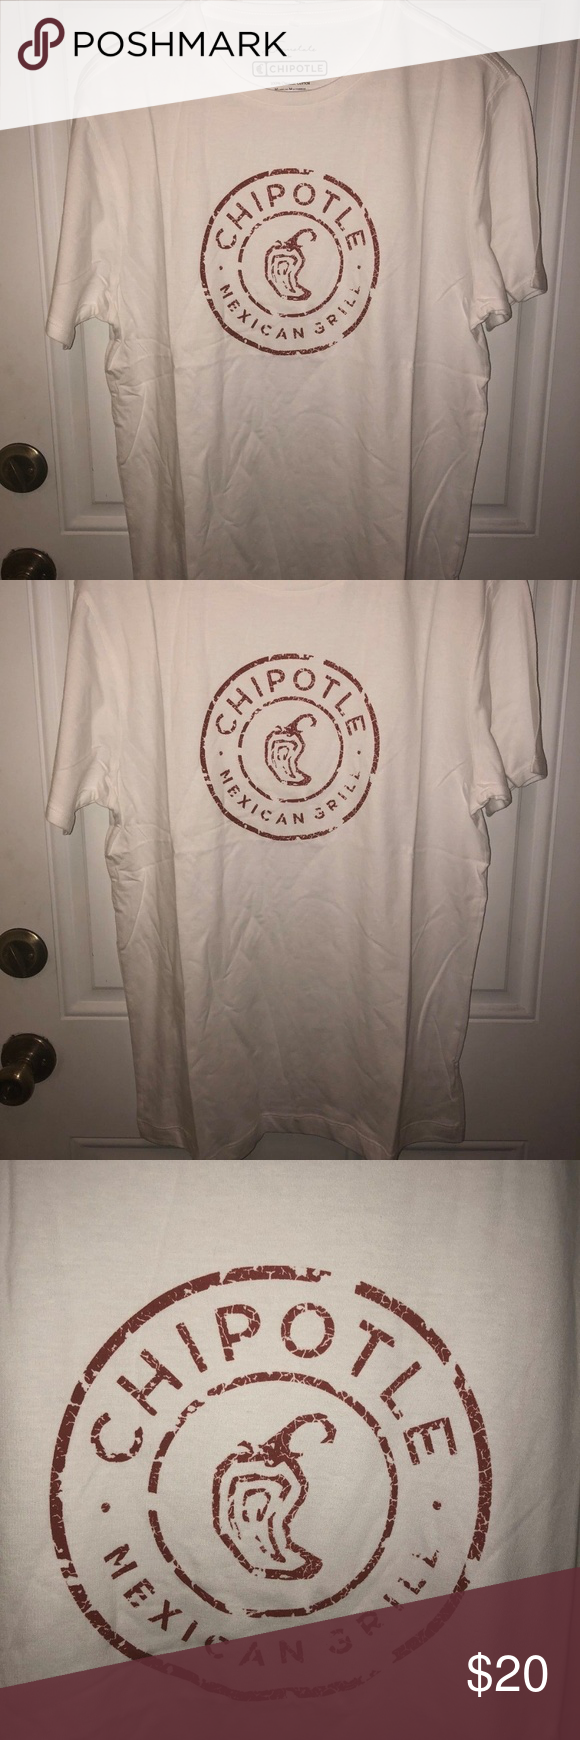 Chipotle Mexican Grill White Tee shirt Medium New White